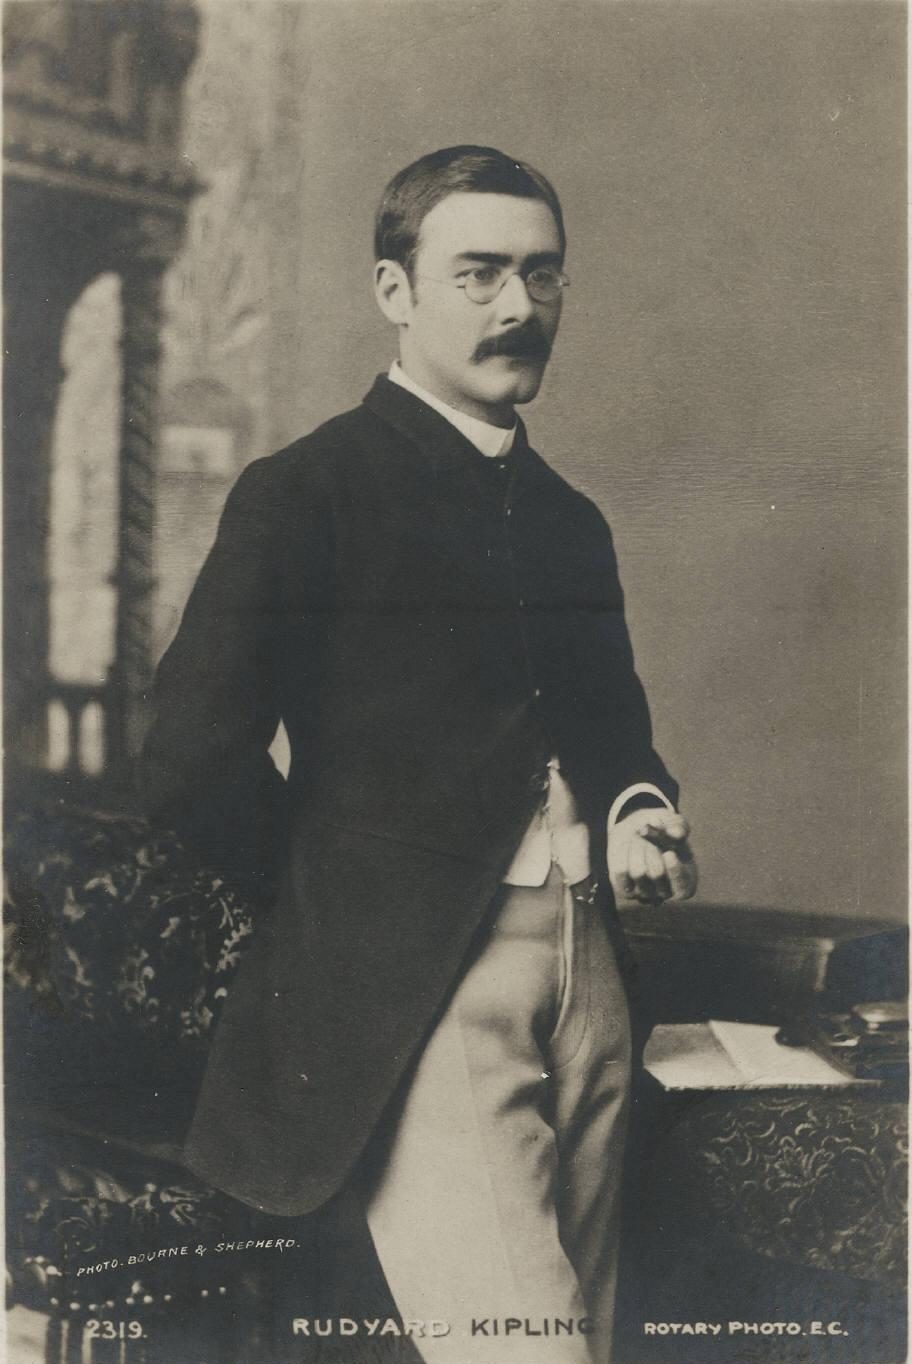 https://i0.wp.com/britainandothers.pbworks.com/f/1302054688/Rudyard_Kipling_three_quarter_length_portrait.jpg